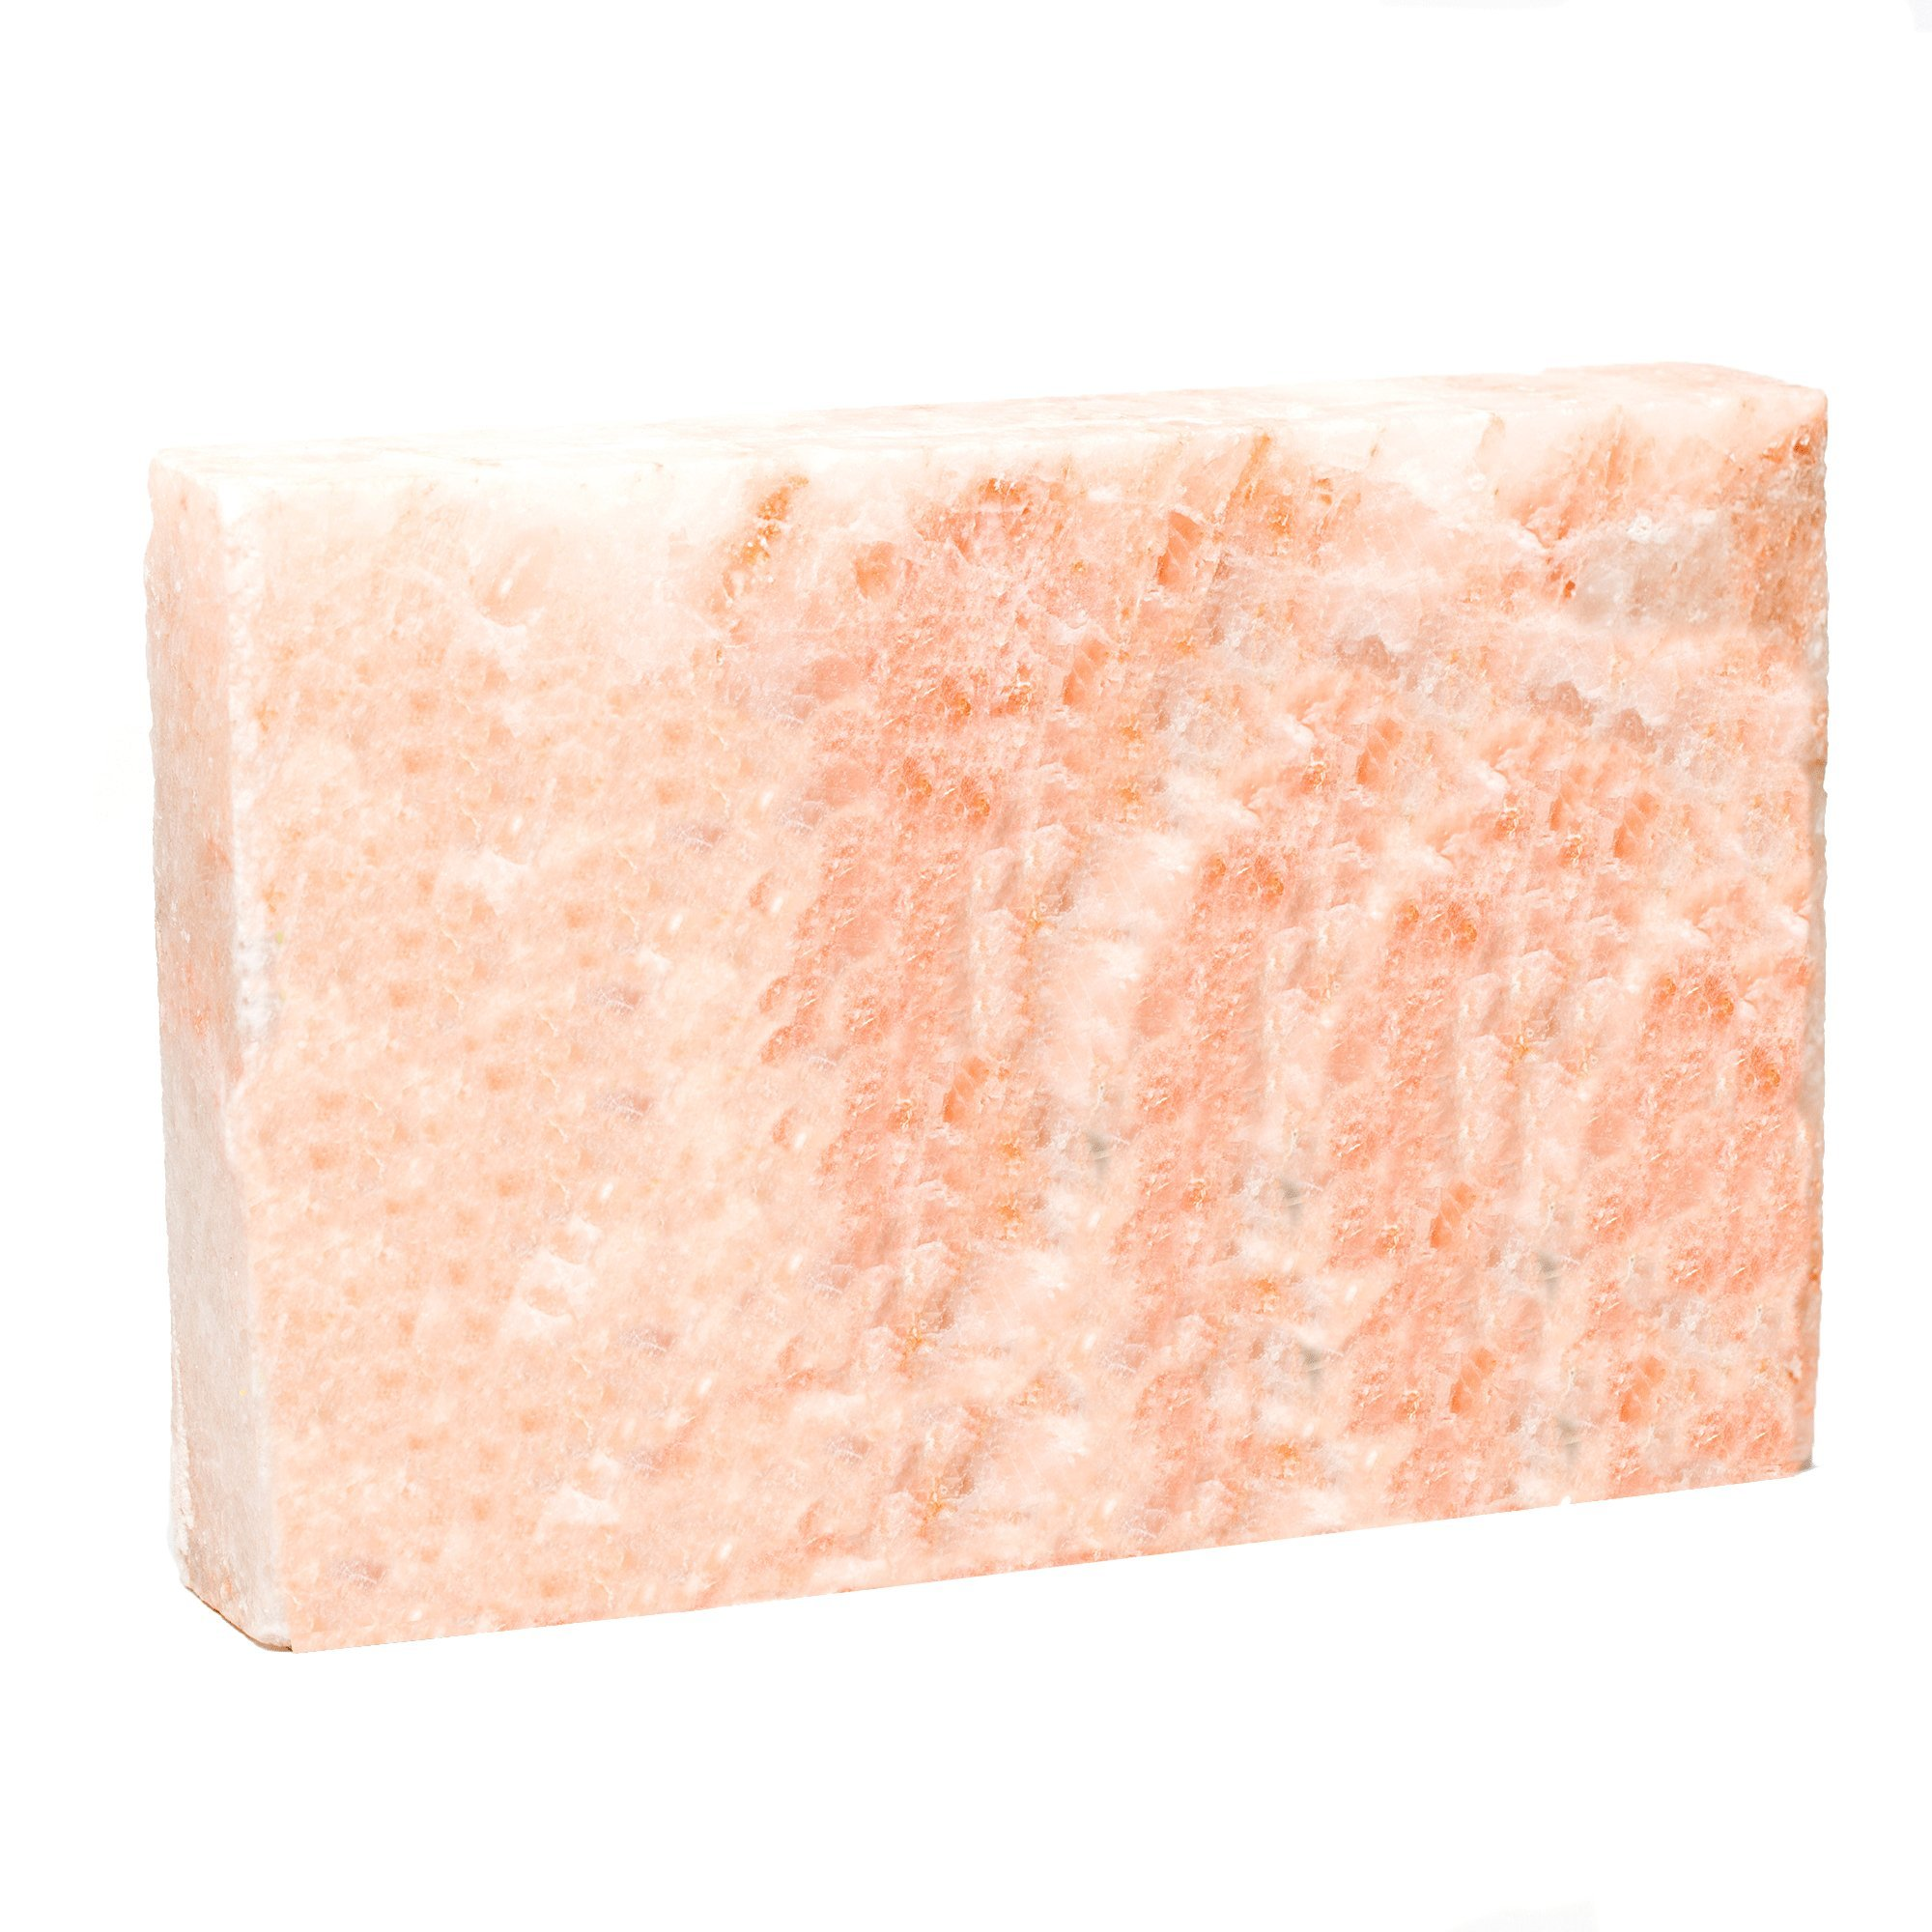 Salt Rox Natural Pink Himalayan Rock Cooking & Grilling Seasoning Stone, Large